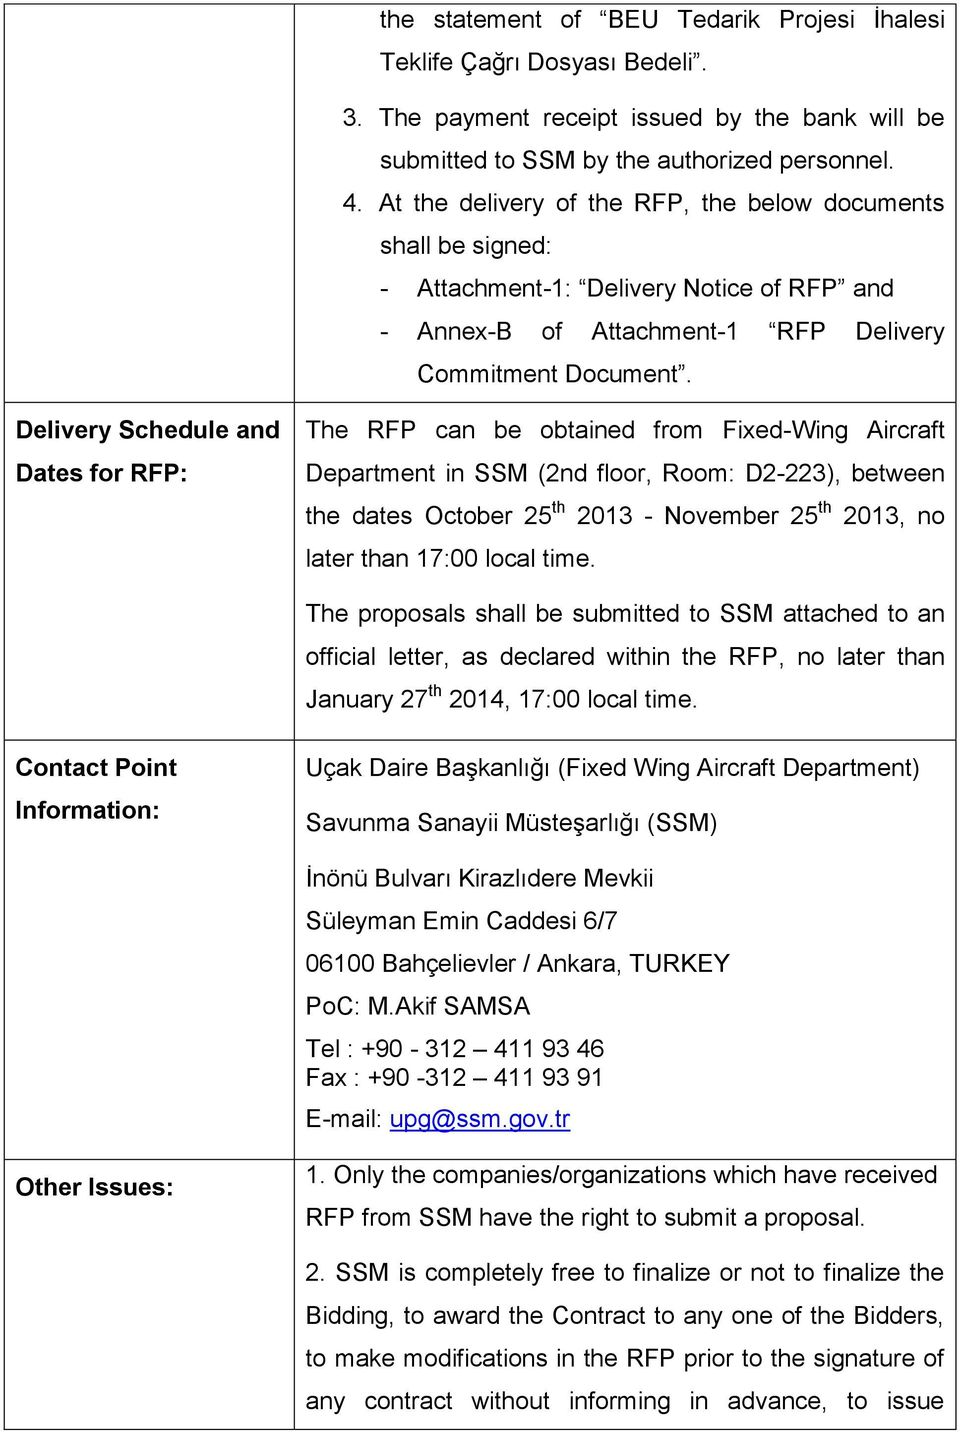 Delivery Schedule and Dates for RFP: The RFP can be obtained from Fixed-Wing Aircraft Department in SSM (2nd floor, Room: D2-223), between the dates October 25 th 2013 - November 25 th 2013, no later